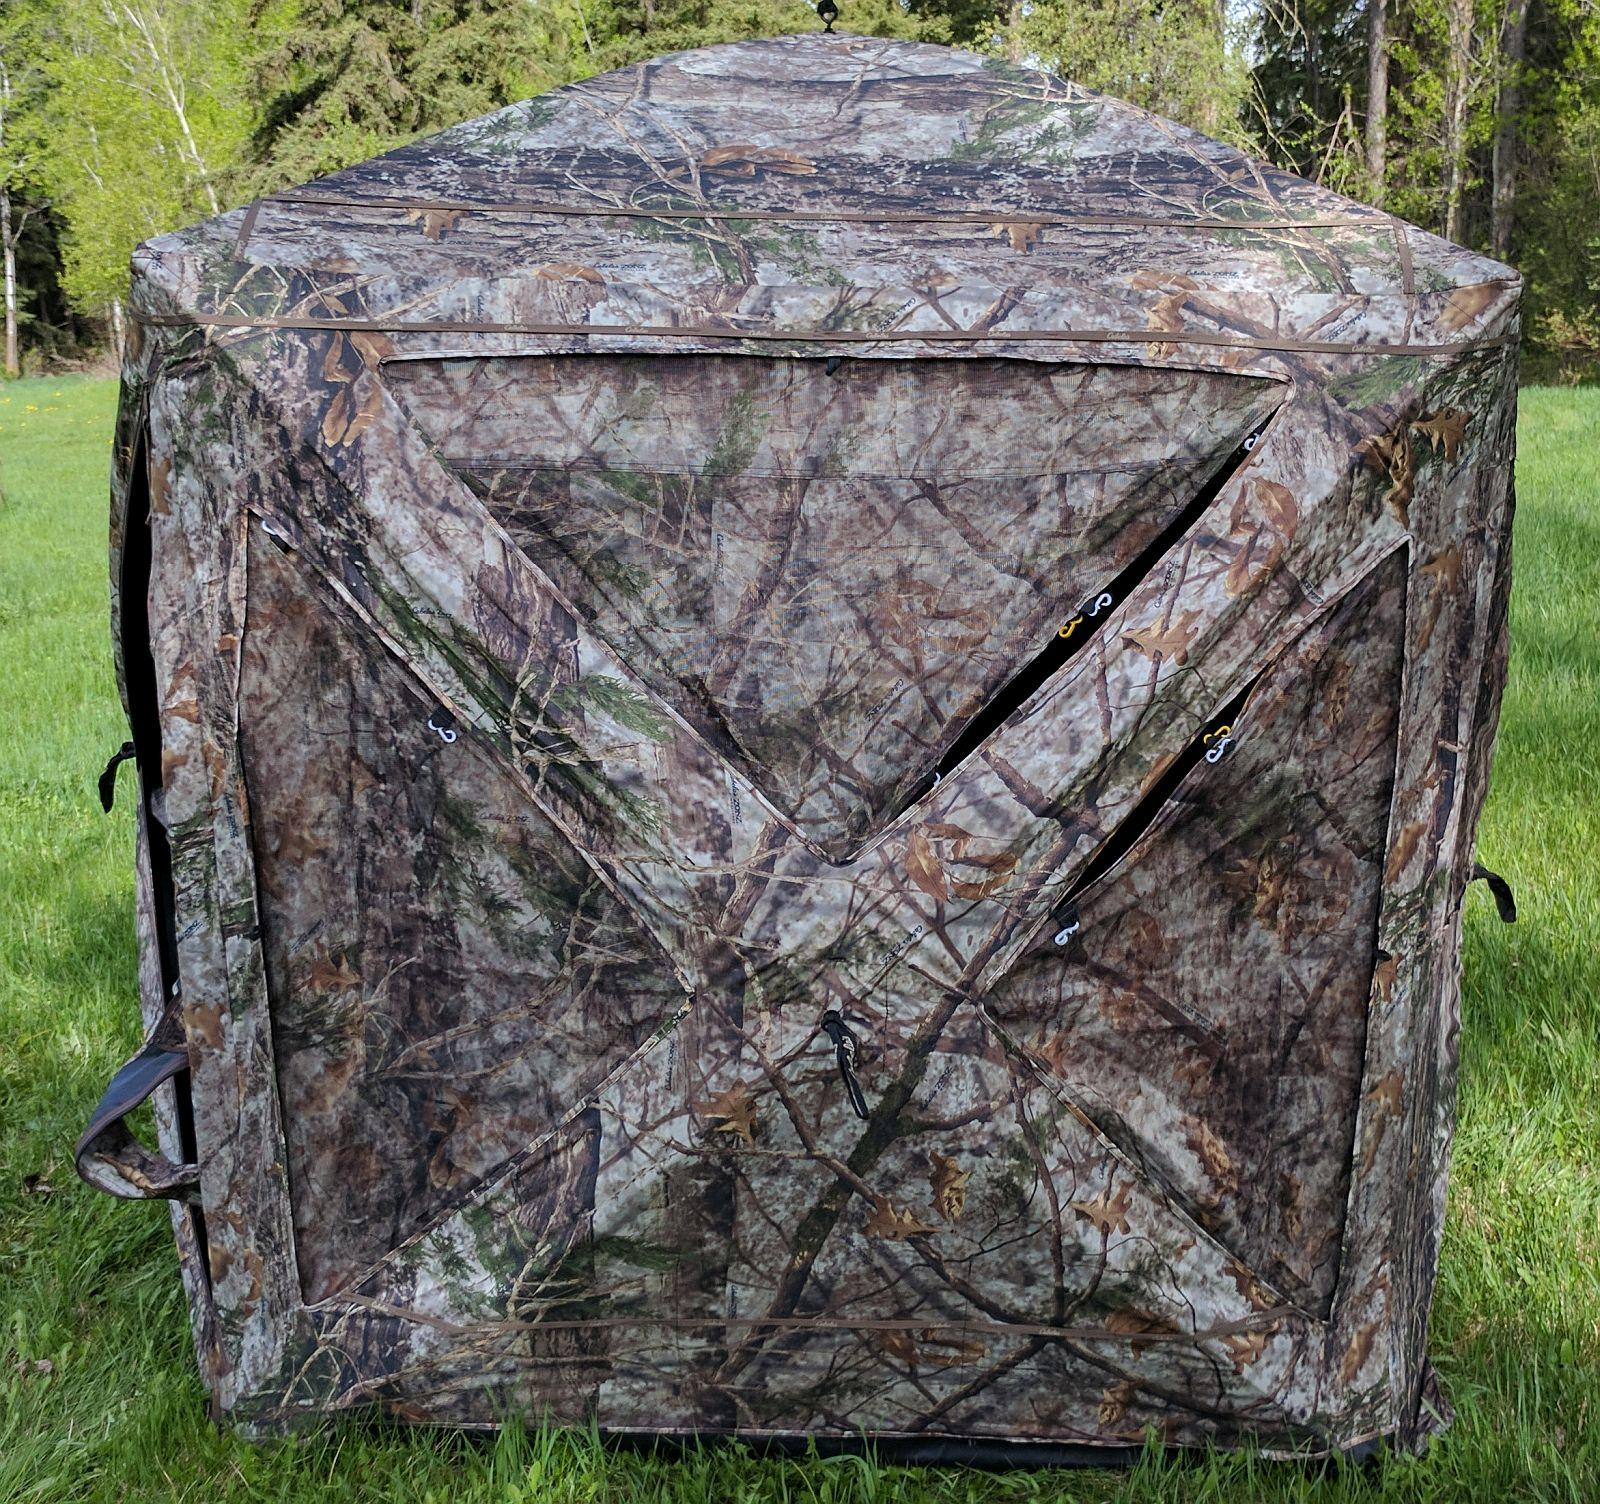 blinds product special with ground extender free predator hunting for blind ghostblind set extenders bow